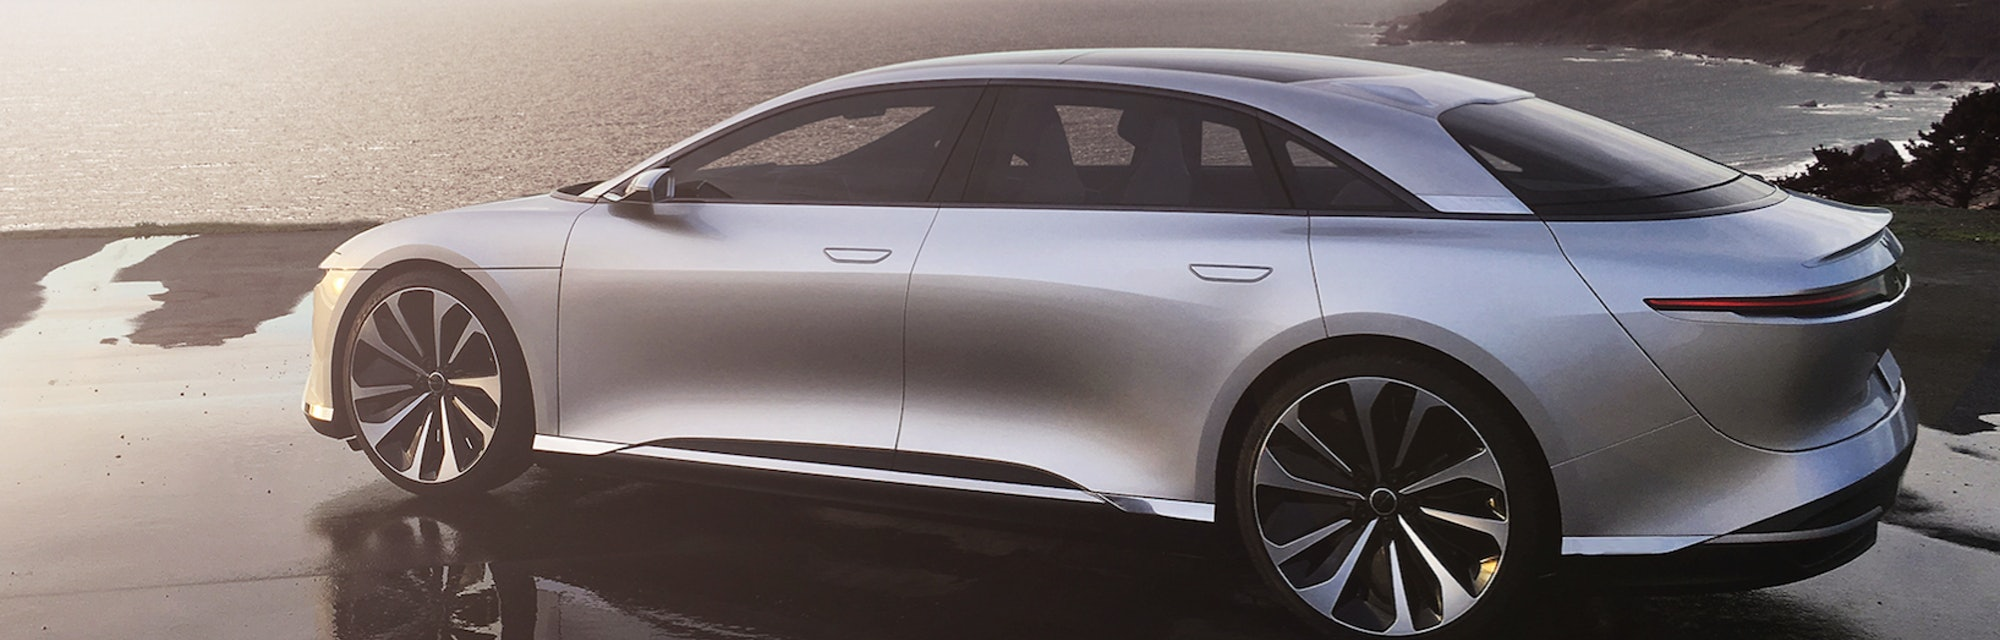 Why a Tesla Model 3 Competitor Won't Come From Lucid Motors